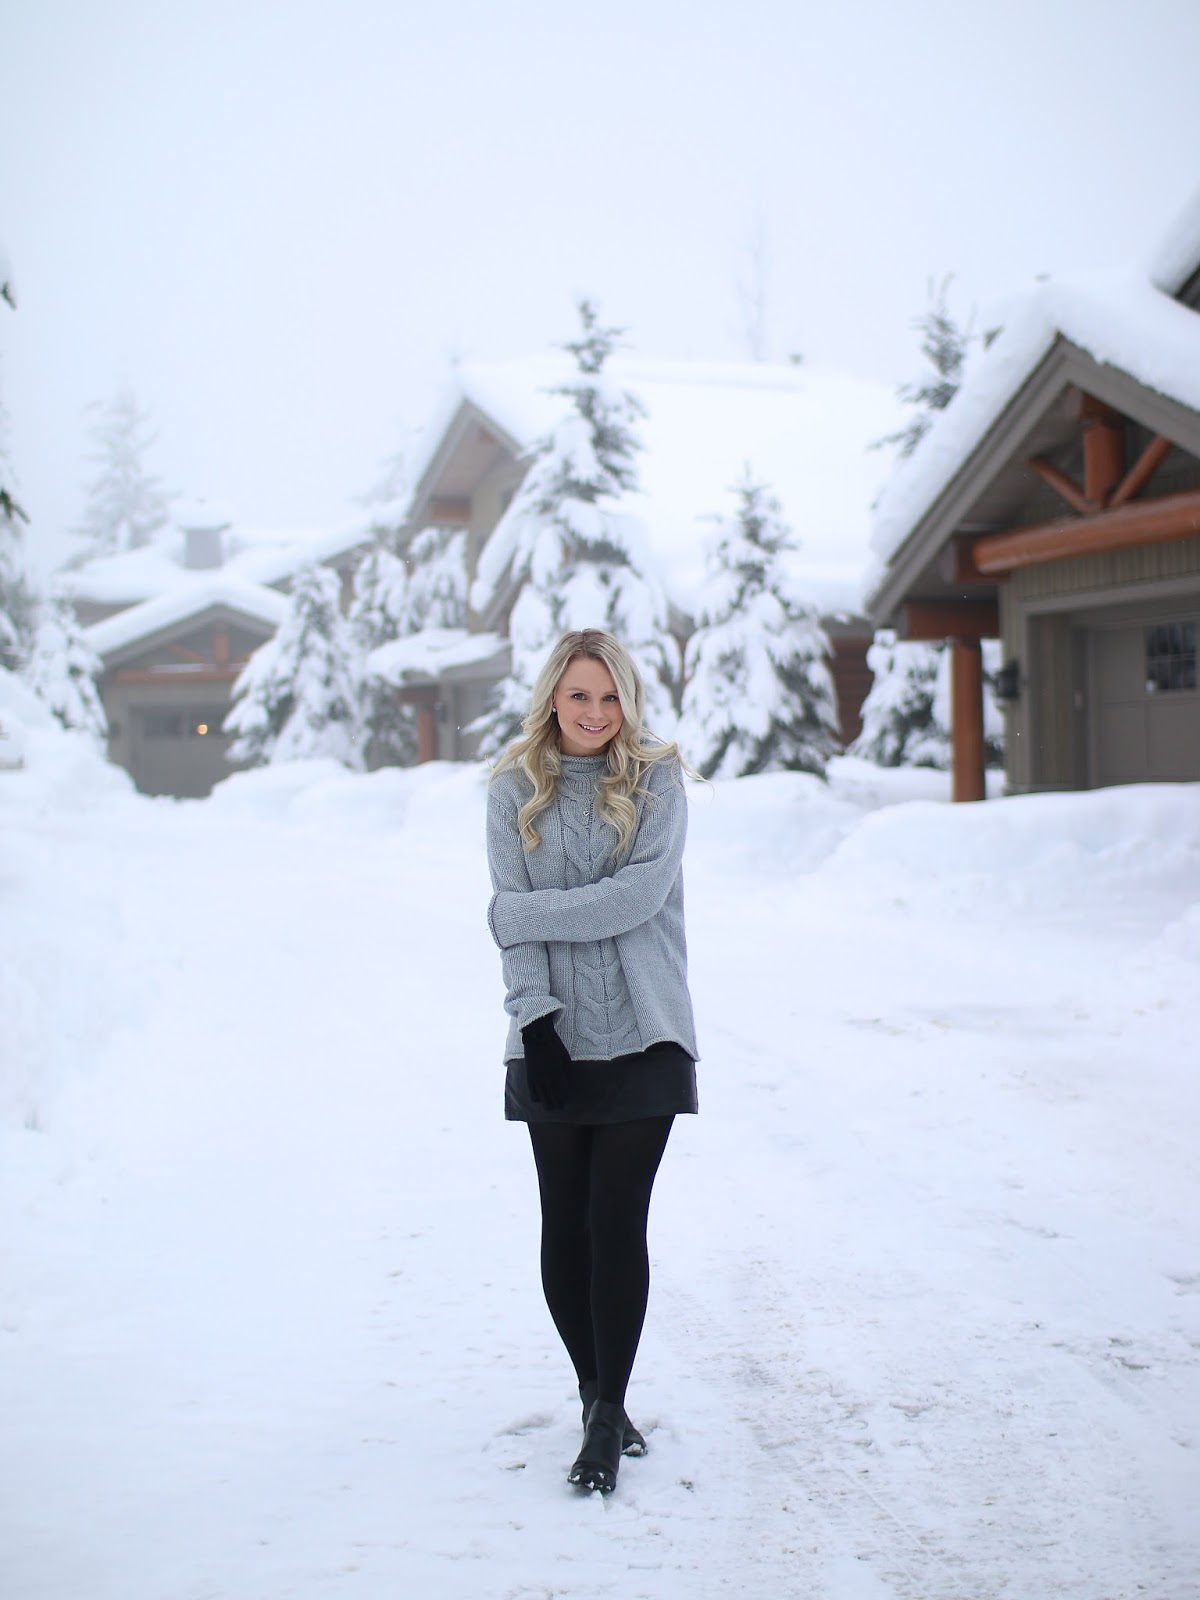 a winter wonderland in whistler canada, a women wearing a trendy neutral outfit in the snow